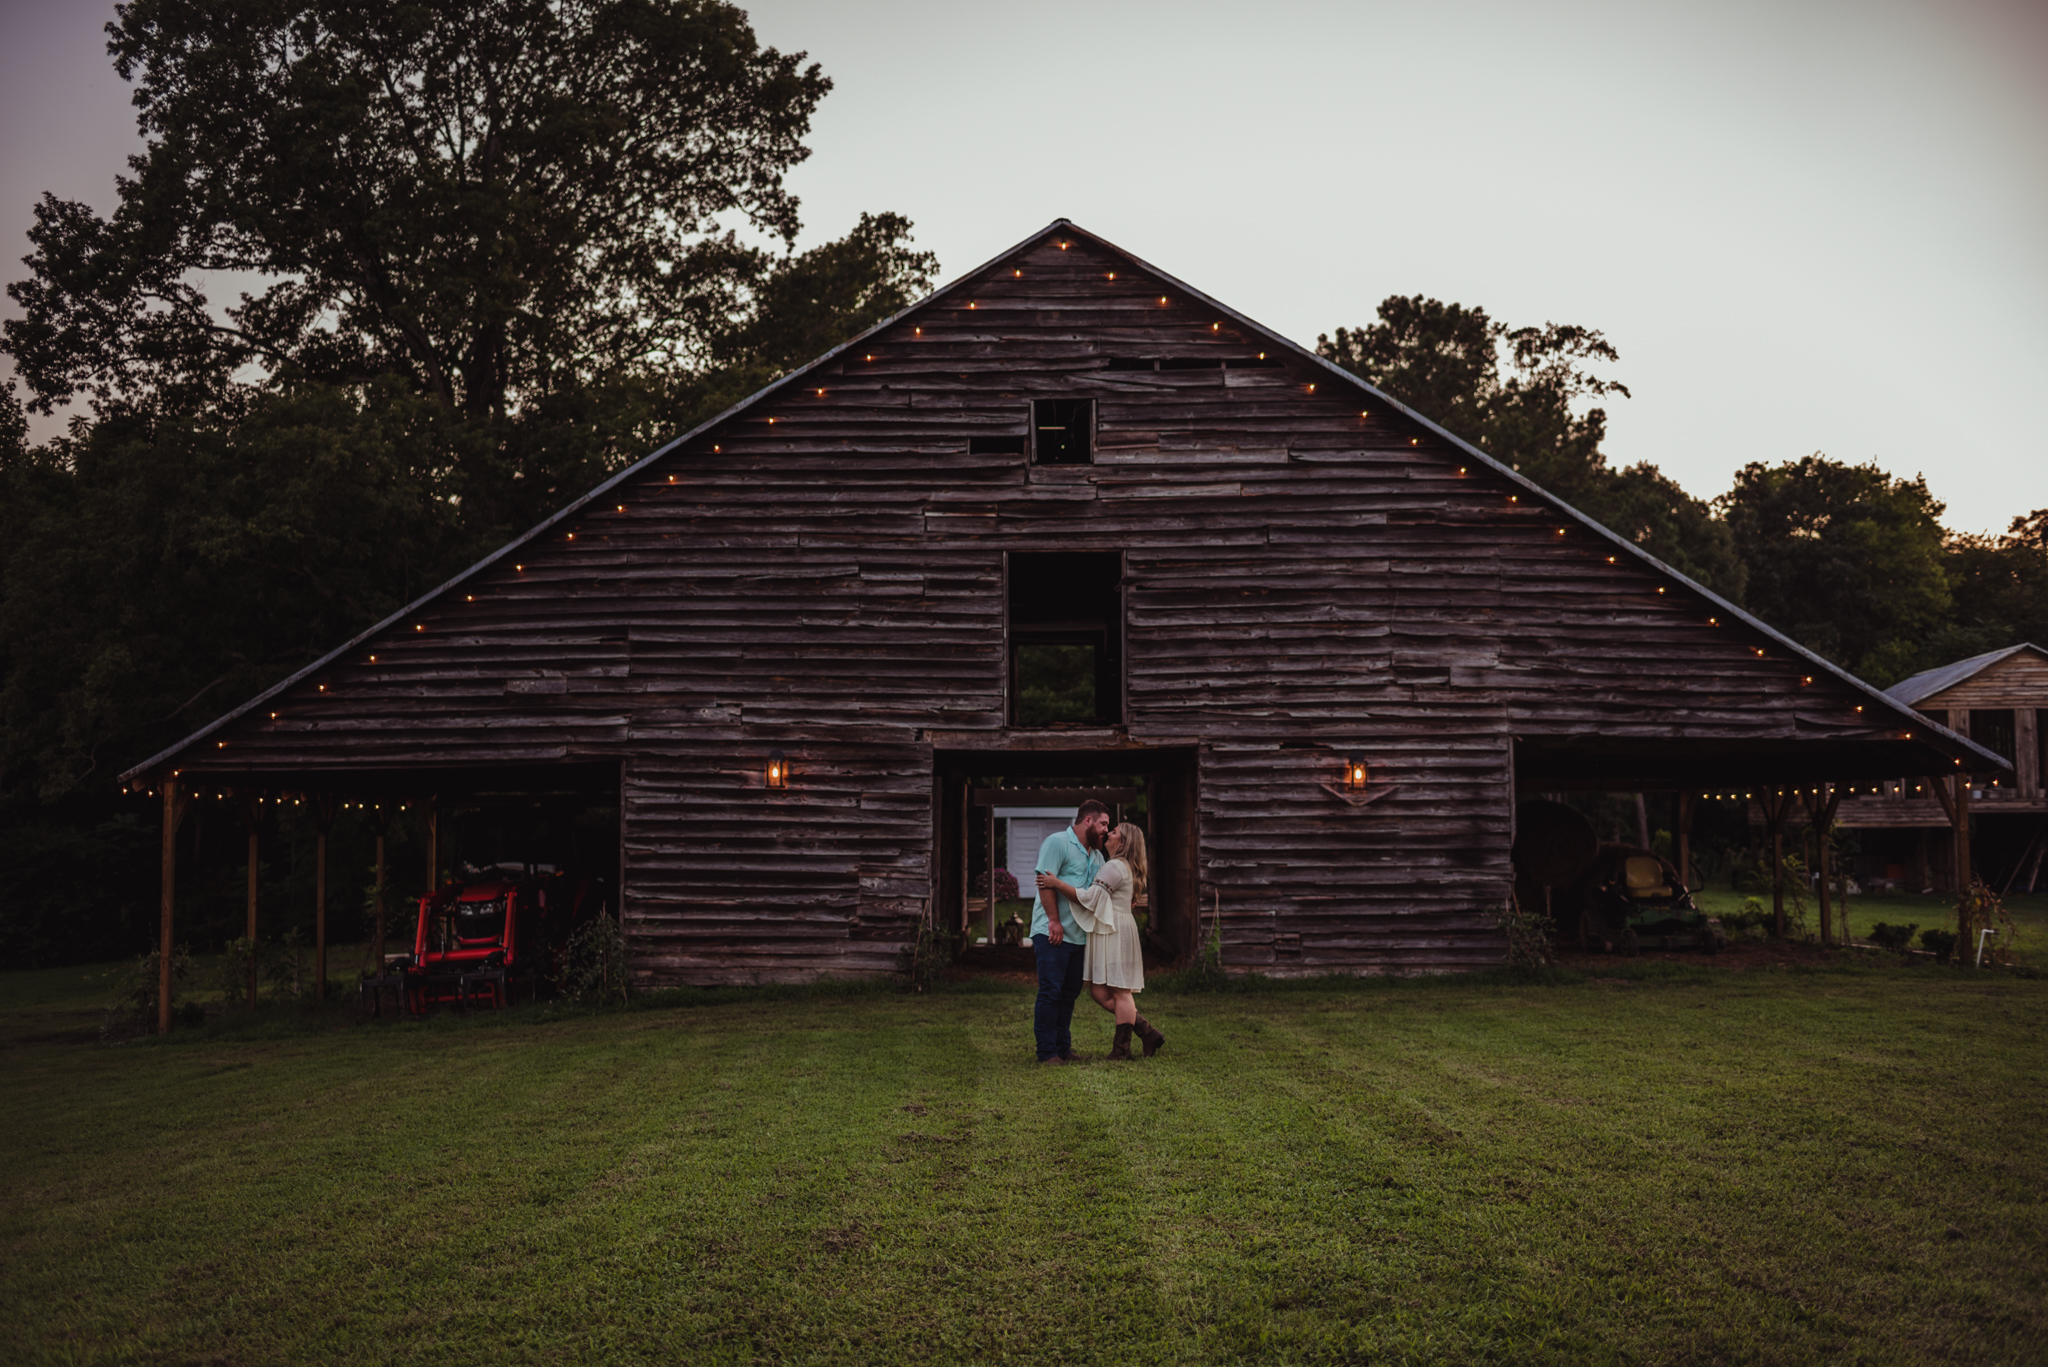 The future bride and groom kiss at sunset in front of the barn for their engagement pictures at The Warren Estate with Rose Trail Images.